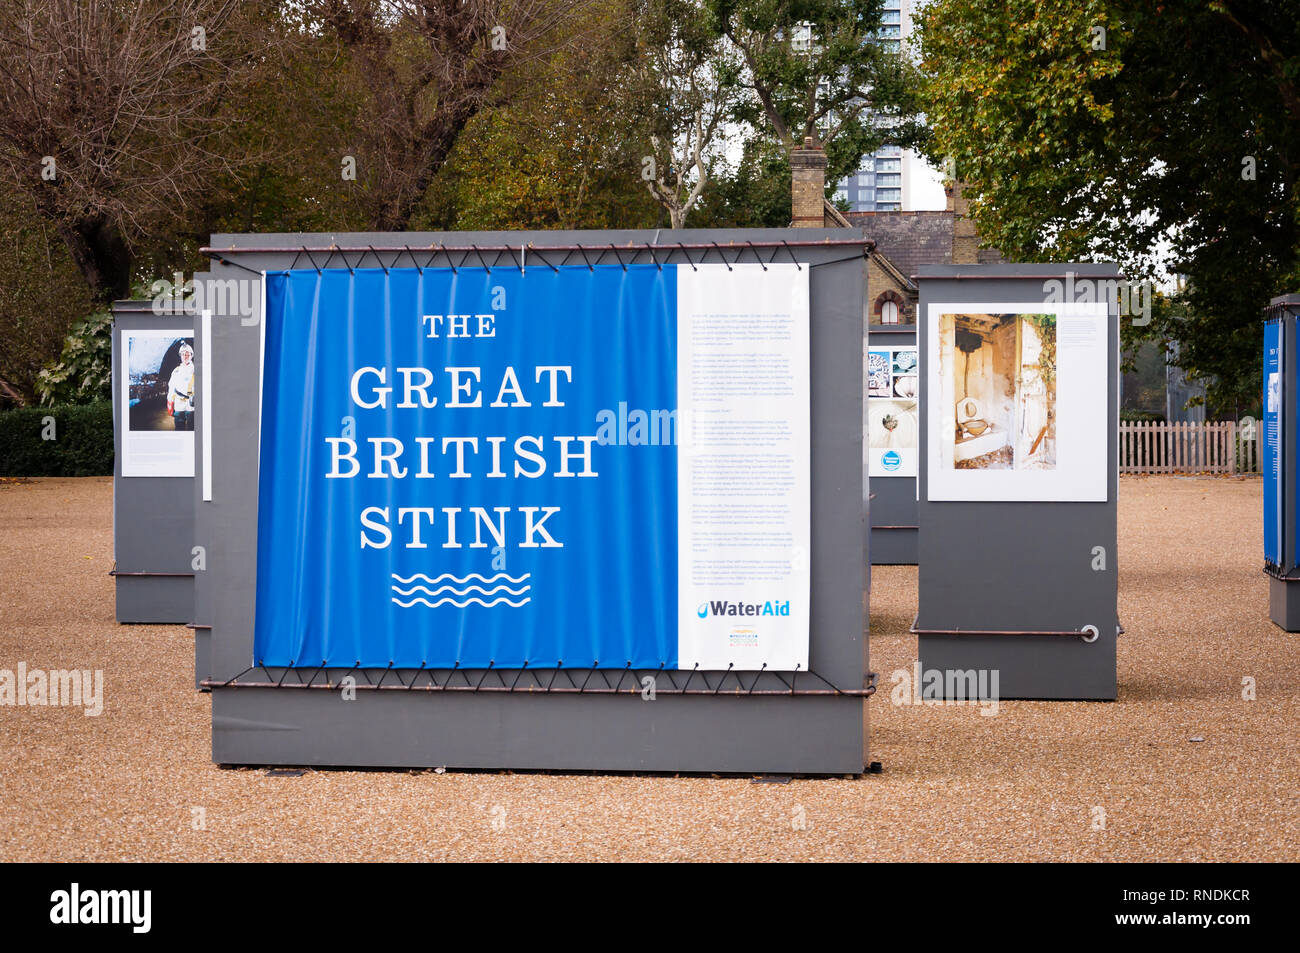 The great British stink  exterior of Abbey Mills Pumping Station, Stratford, London, England, Uk - Stock Image